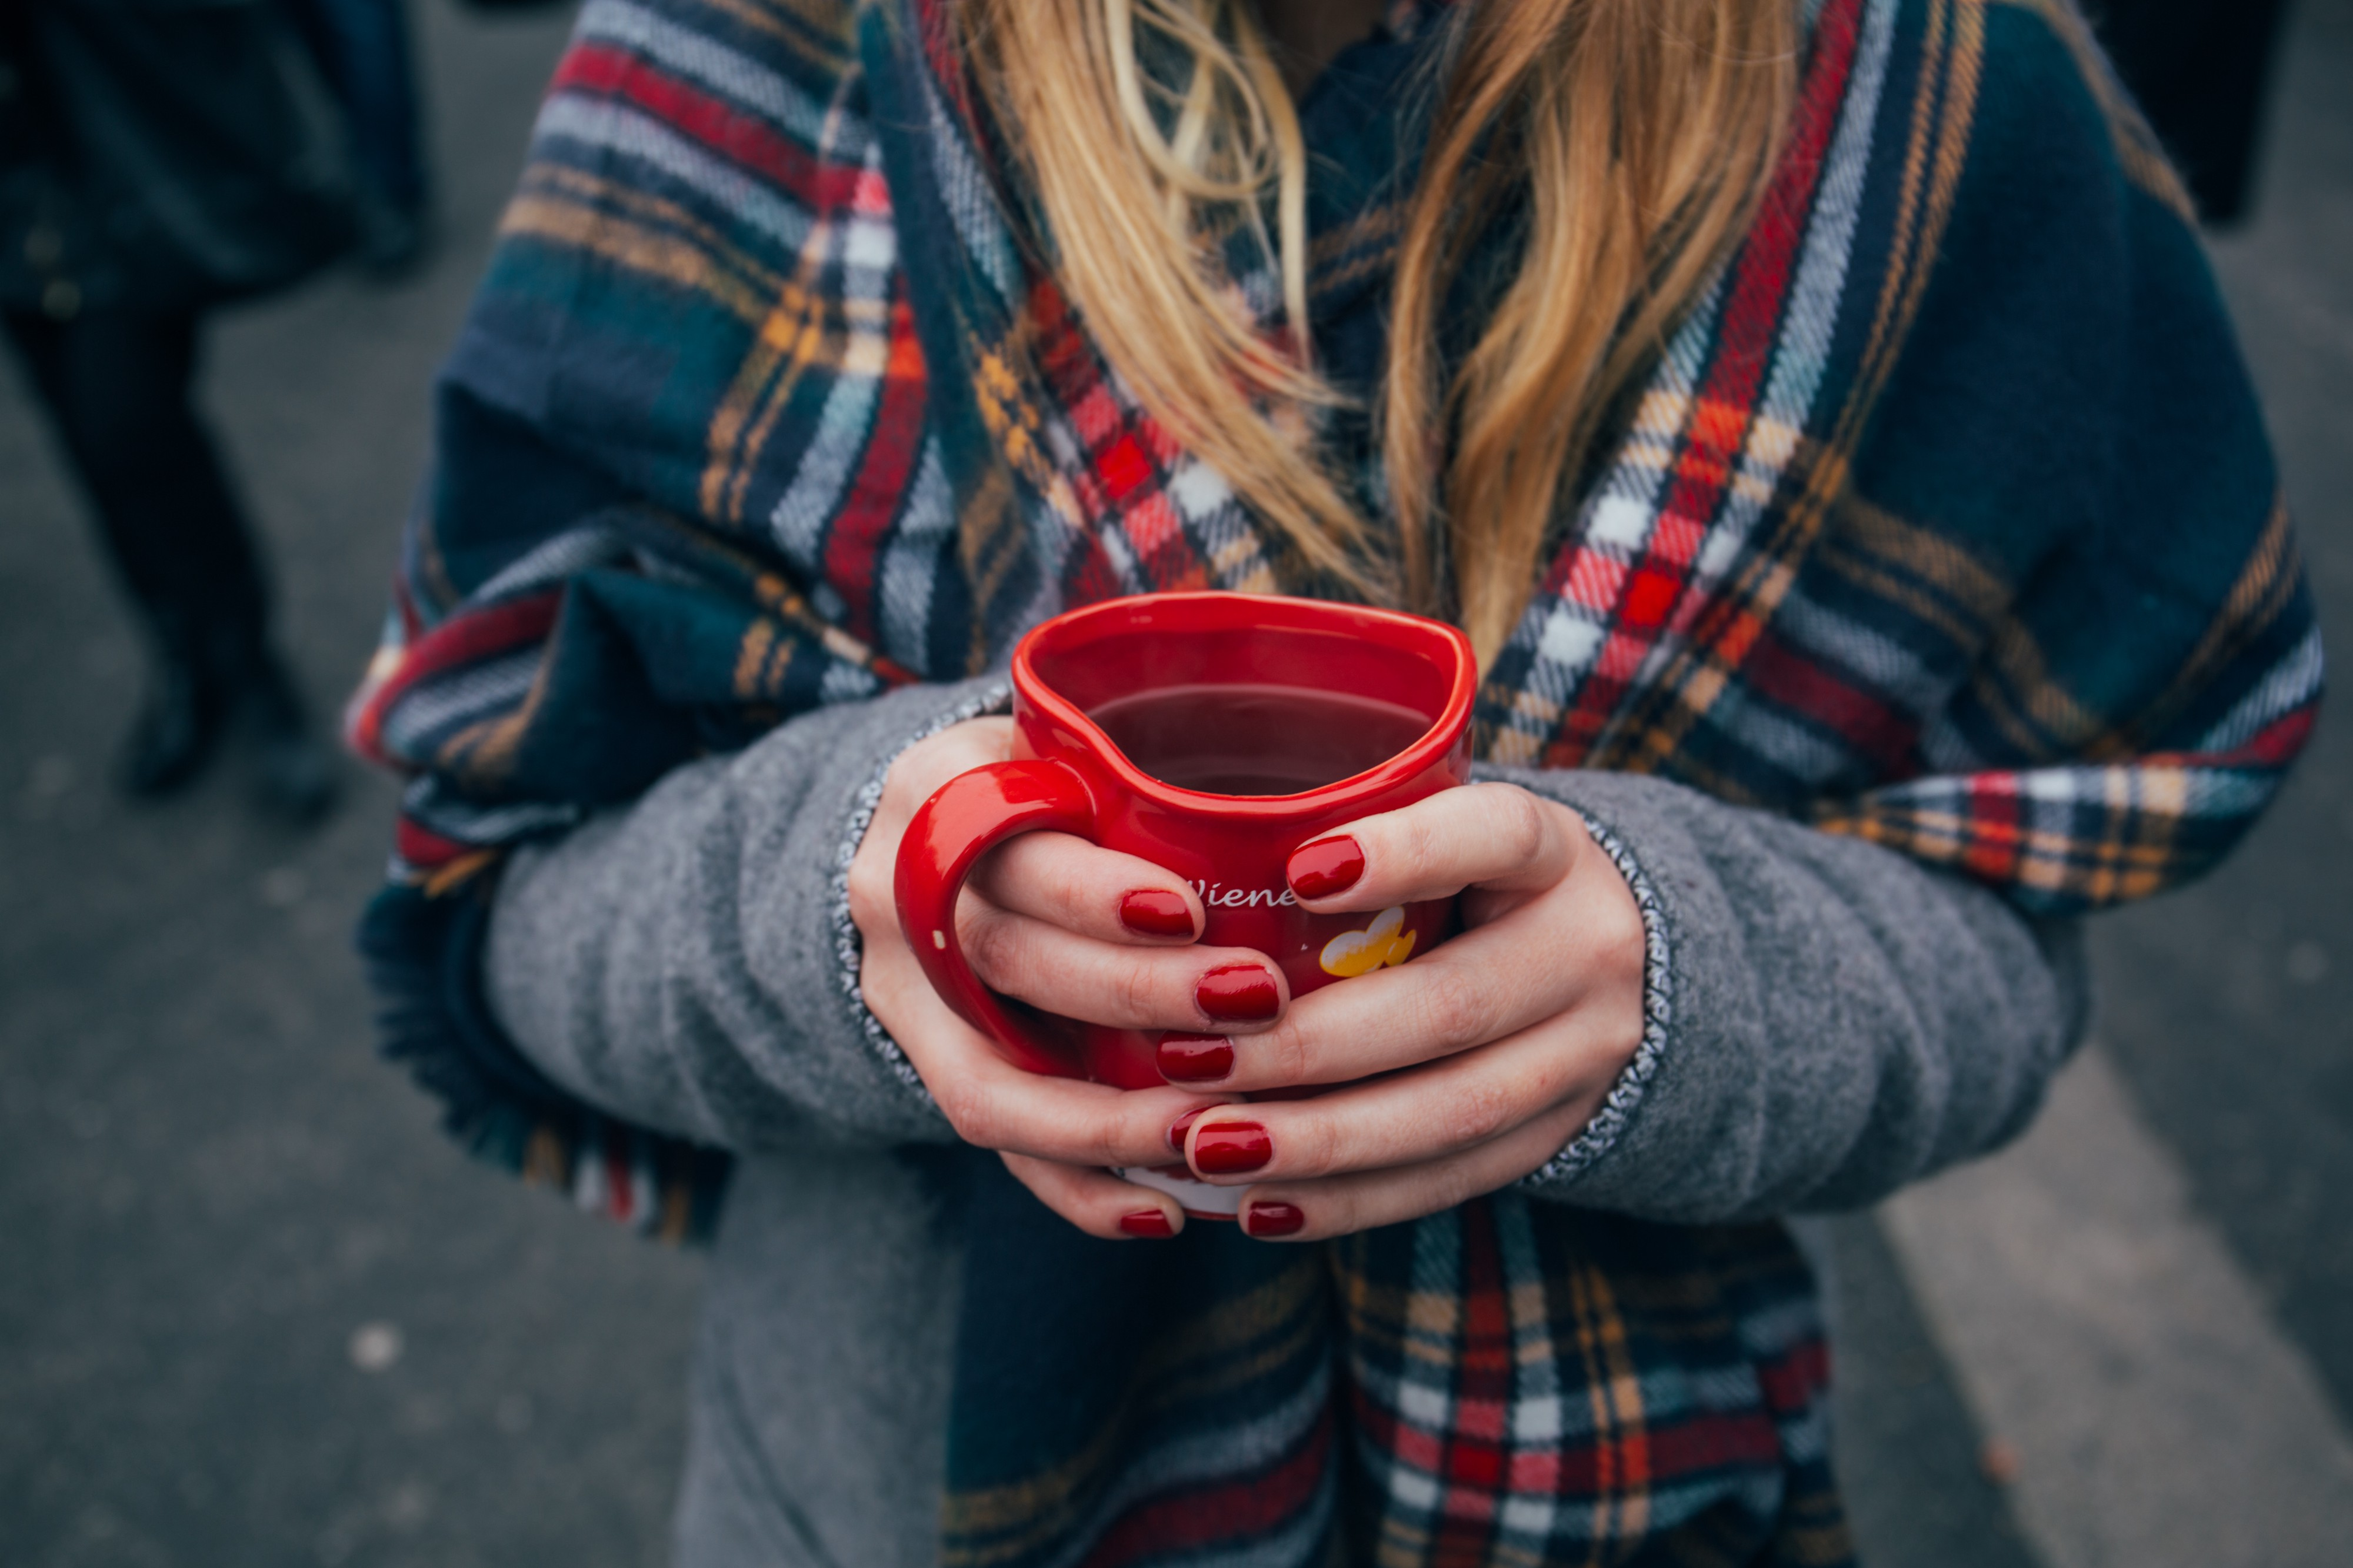 Woman with red-painted fingernails, holding a red coffee mug